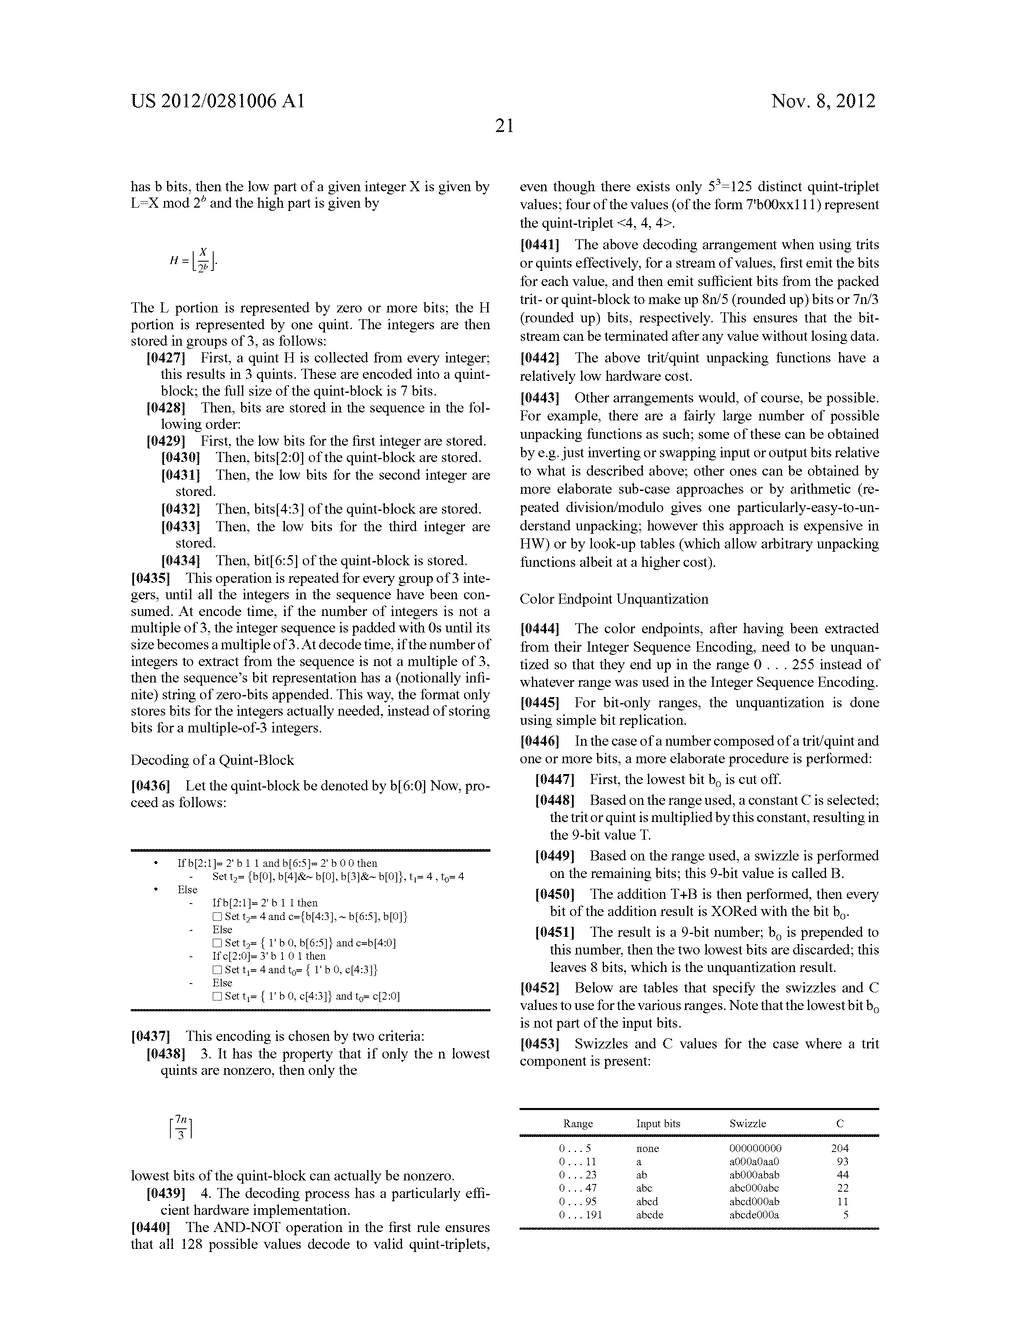 Method Of And Apparatus For Encoding And Decoding Data - diagram, schematic, and image 33